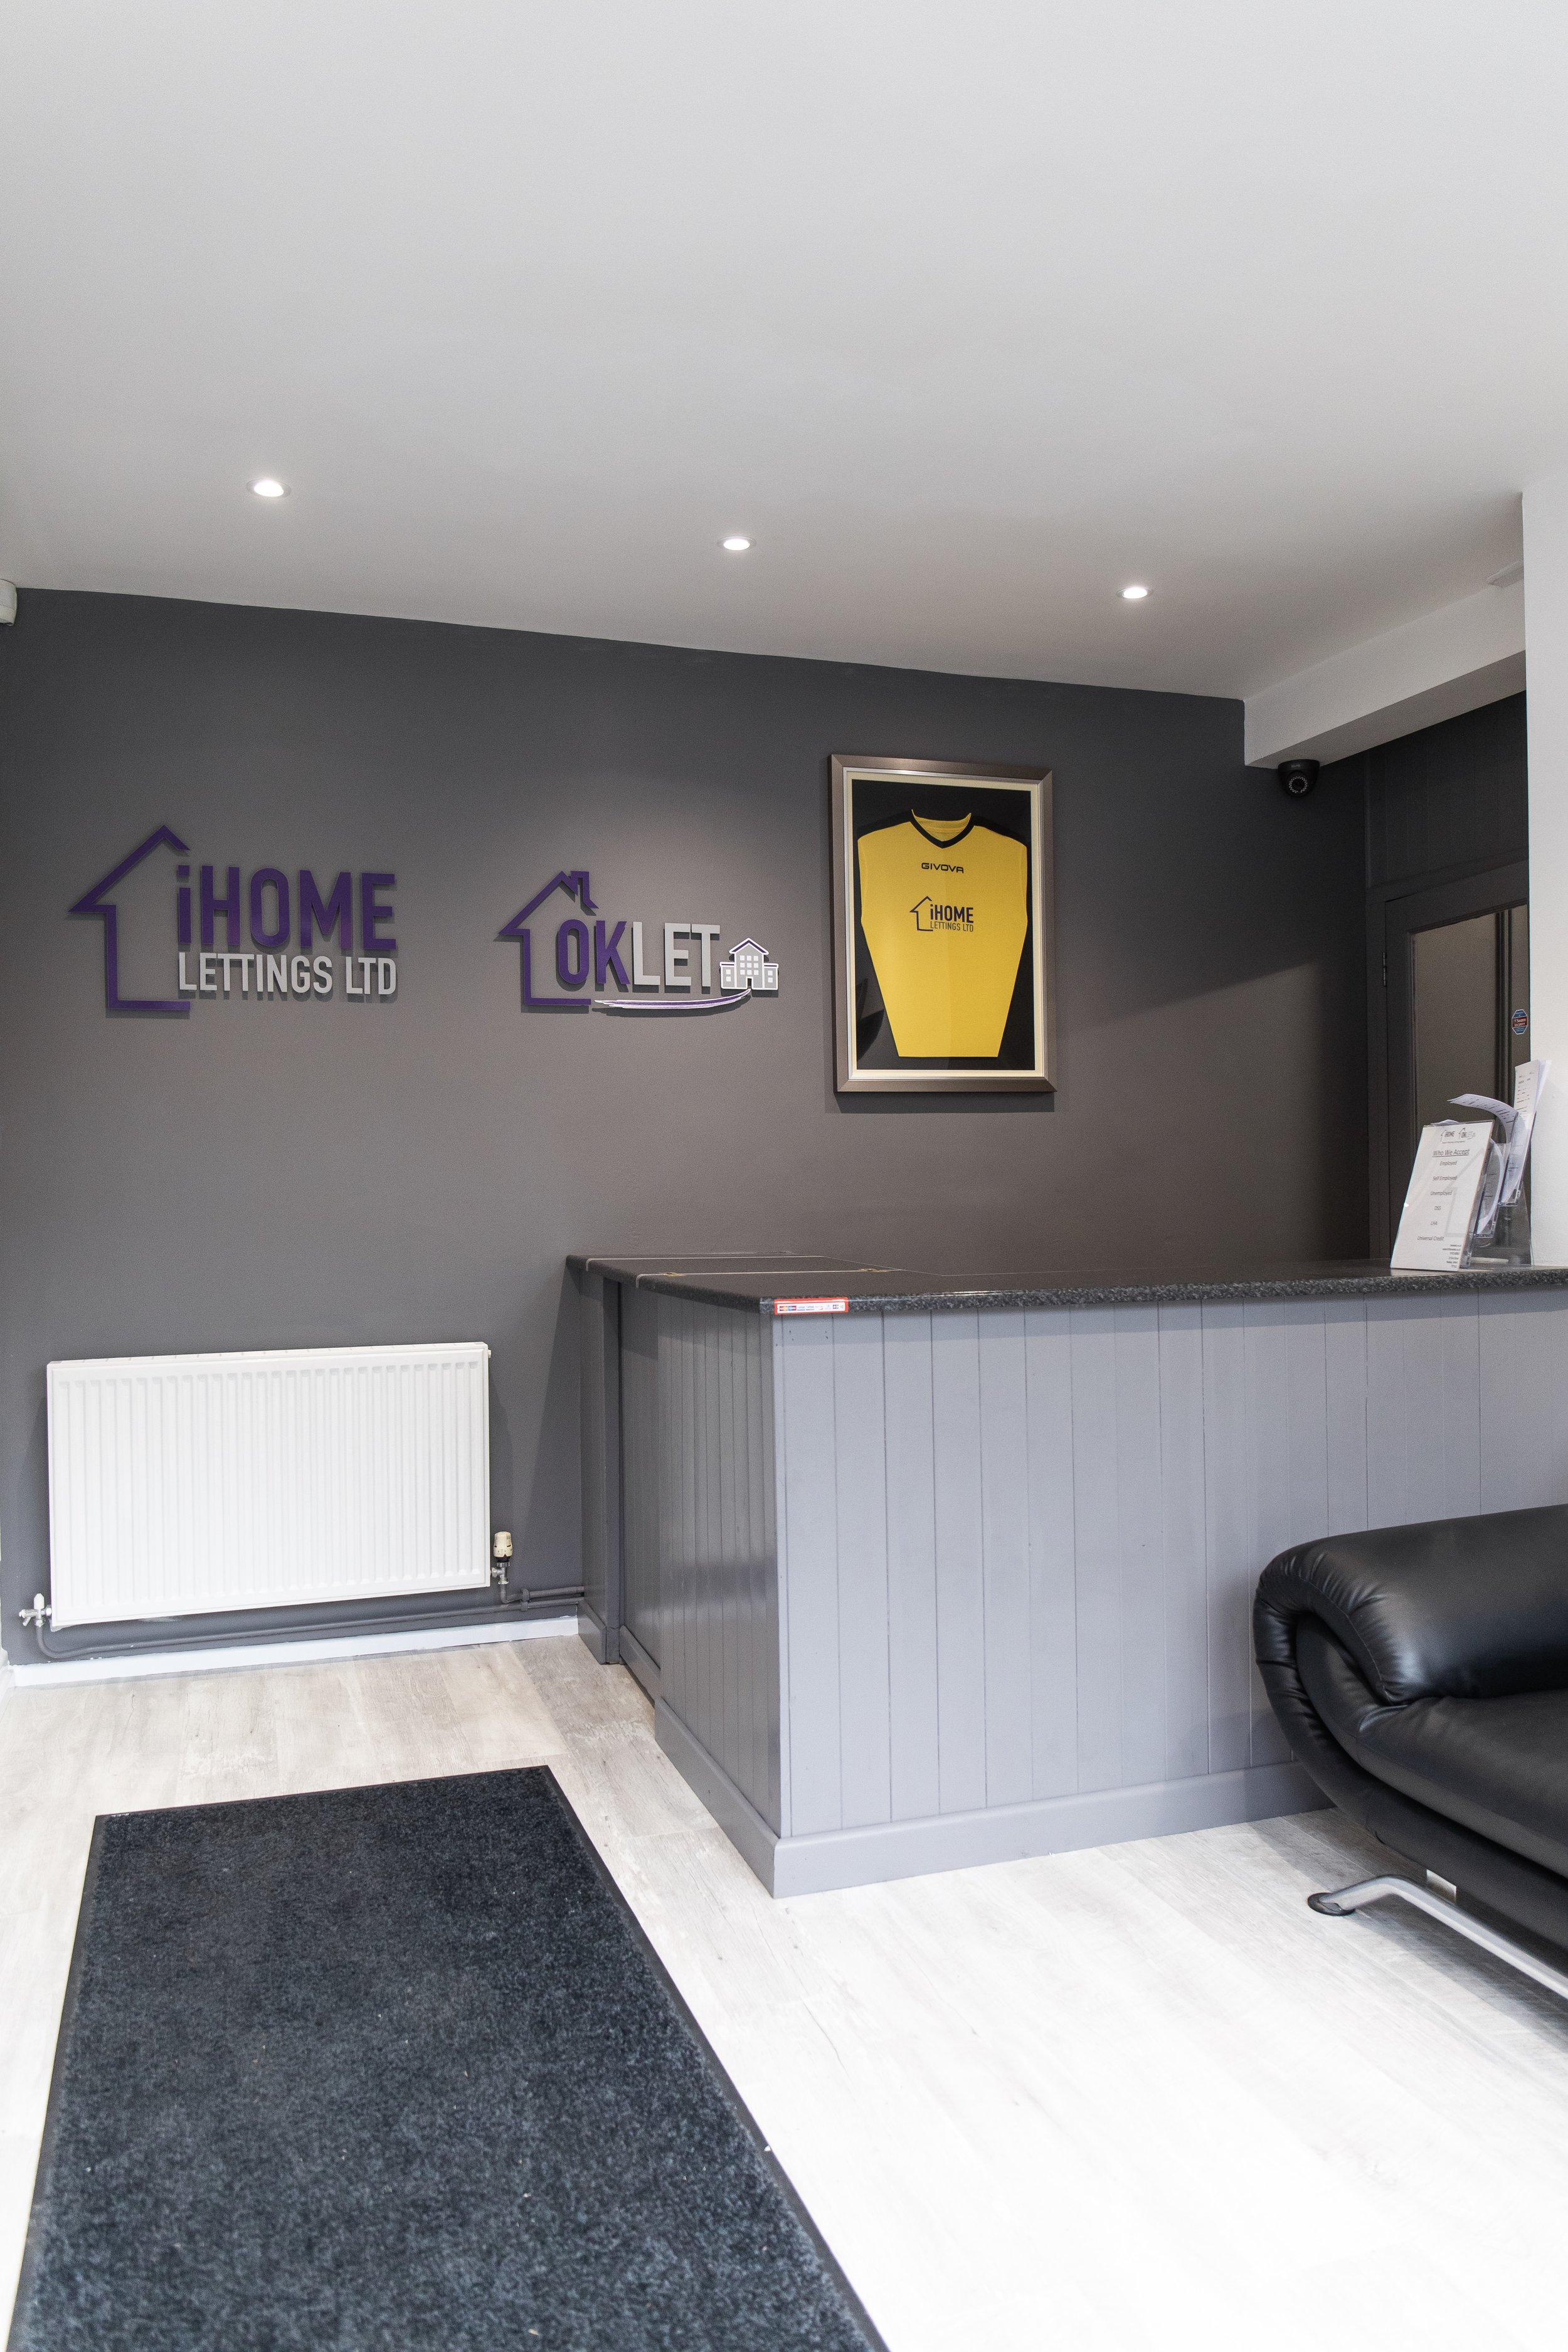 """The Best Letting Agency 2019 - iHome Lettings Ltd. are an award winning prestige letting agency that excels in straight forward housing solutions for individuals of all backgrounds, with an emphasis on providing exceptional customer service.Established in January 2018, iHome Lettings has grown at an exponential rate in its inaugural year - being voted Best Letting Agency 2019 within the space of 12 months!Harvinder Duhra, Co-Founder, believes """"The growth of the business can be attributed to simply doing the little things really well and taking pride in everything we do""""."""